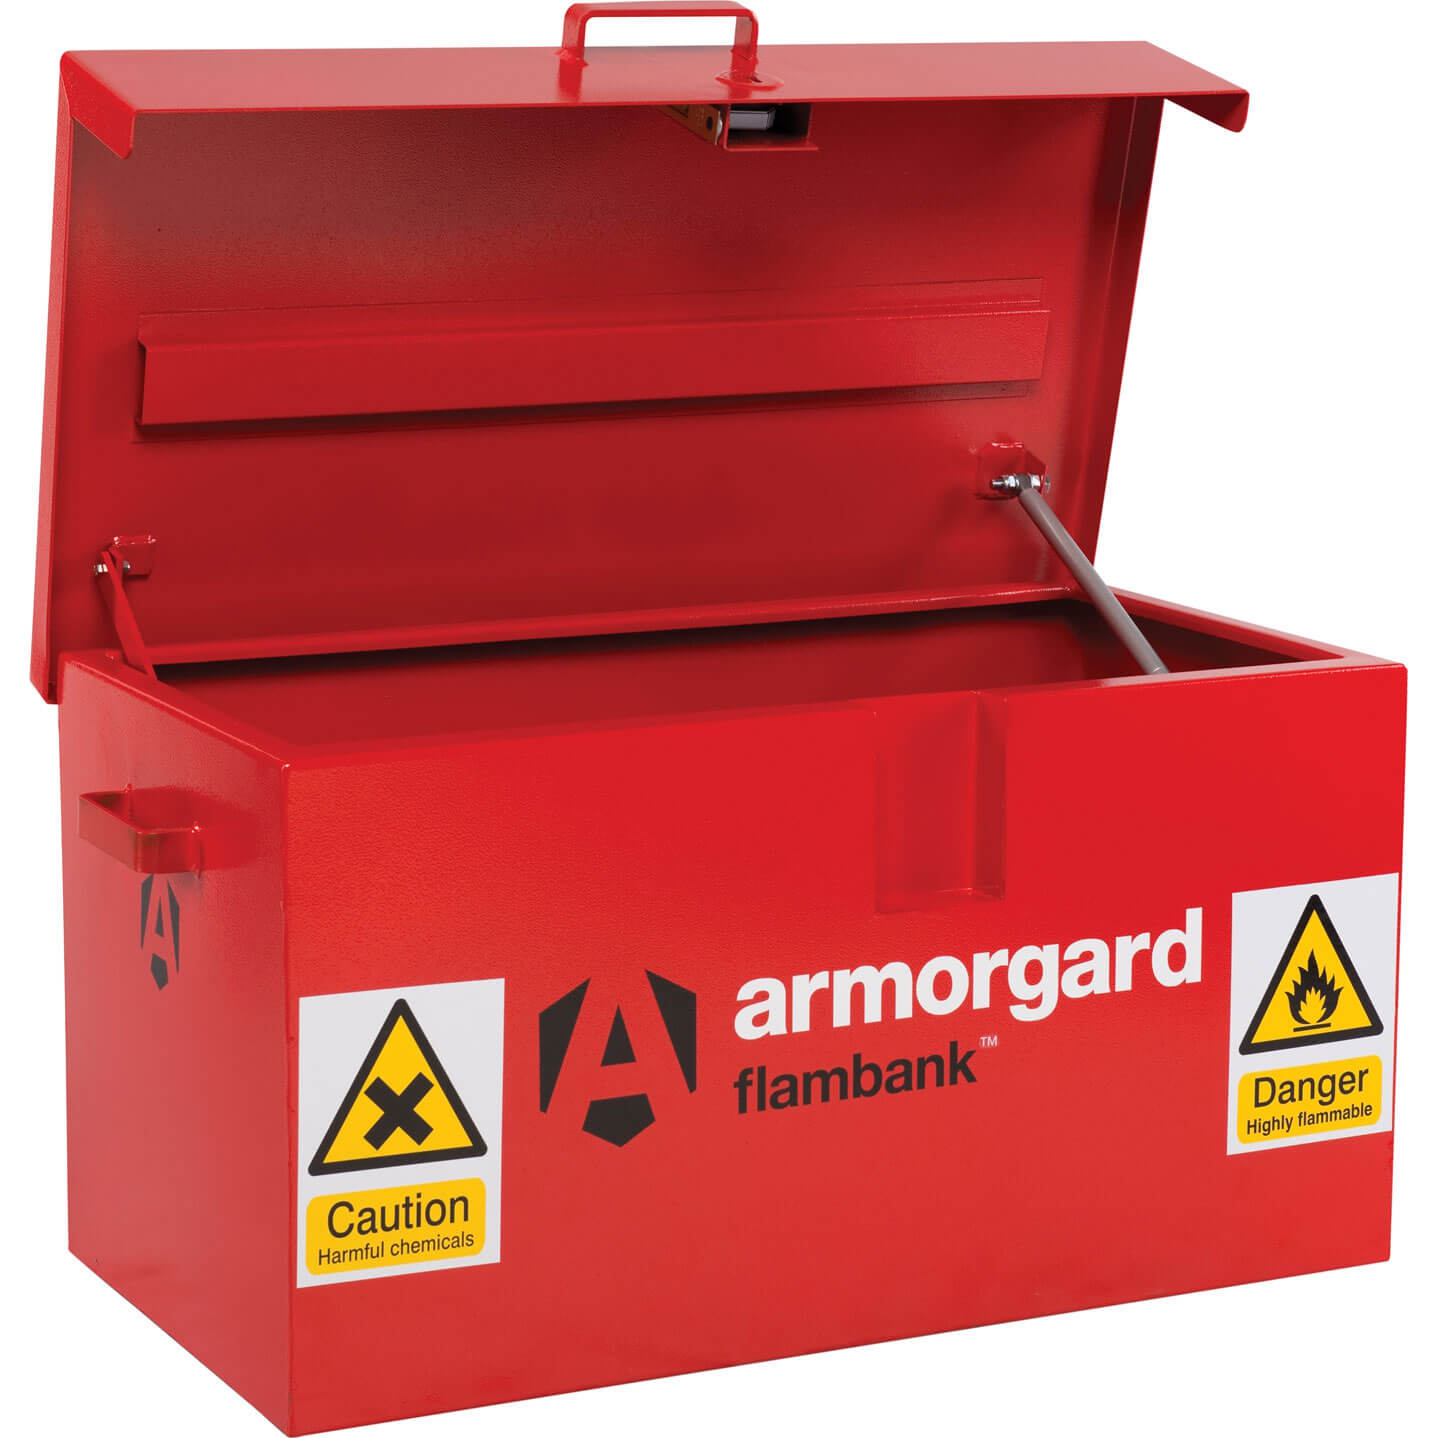 Armorgard Flambank Chemical & Flammables Storage Chest